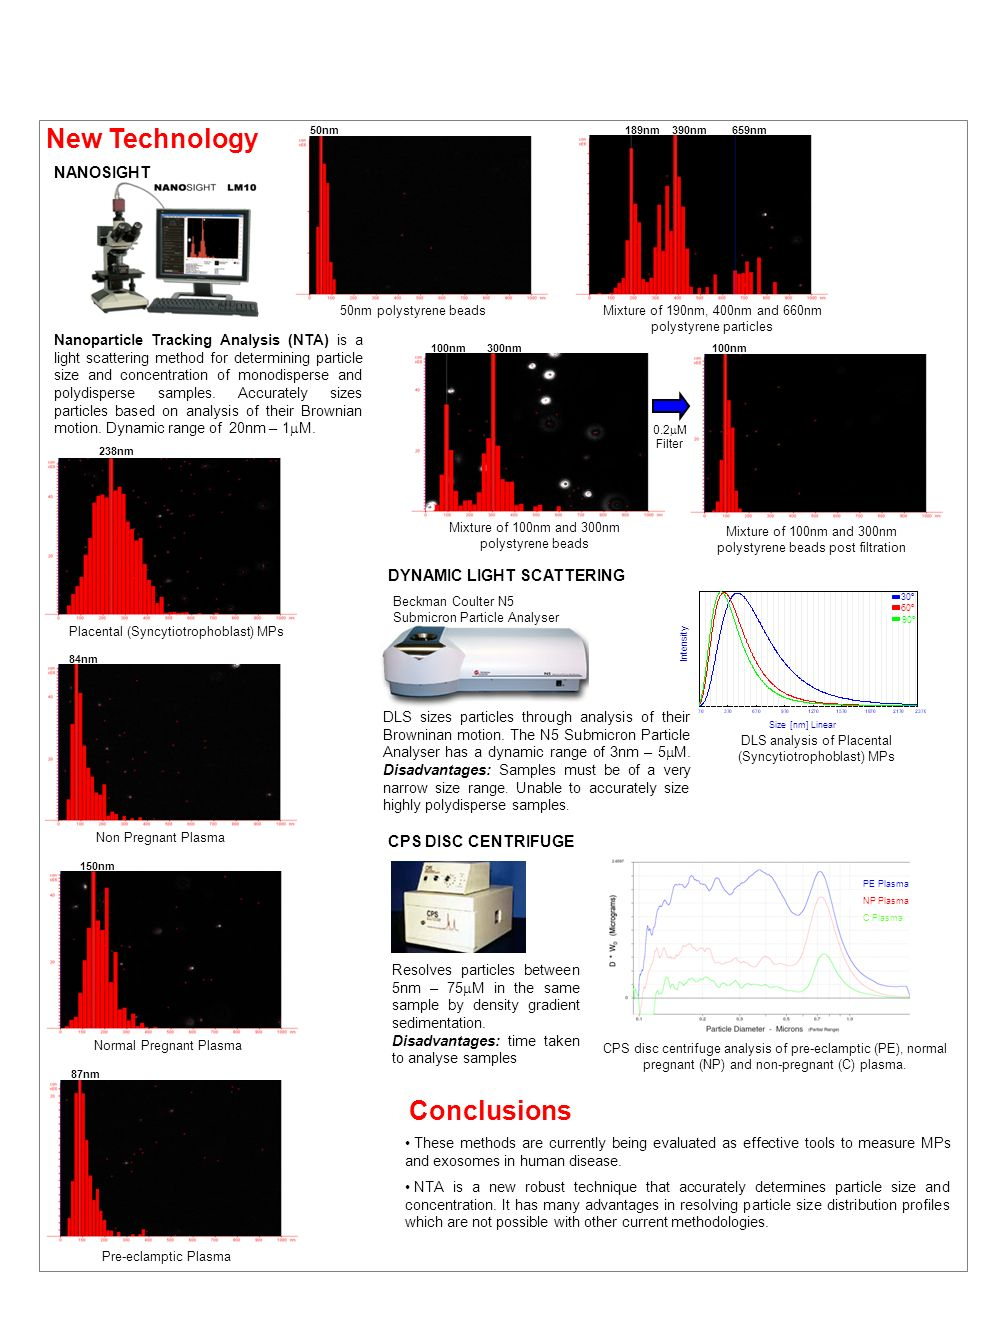 New Technology Conclusions NANOSIGHT DYNAMIC LIGHT SCATTERING